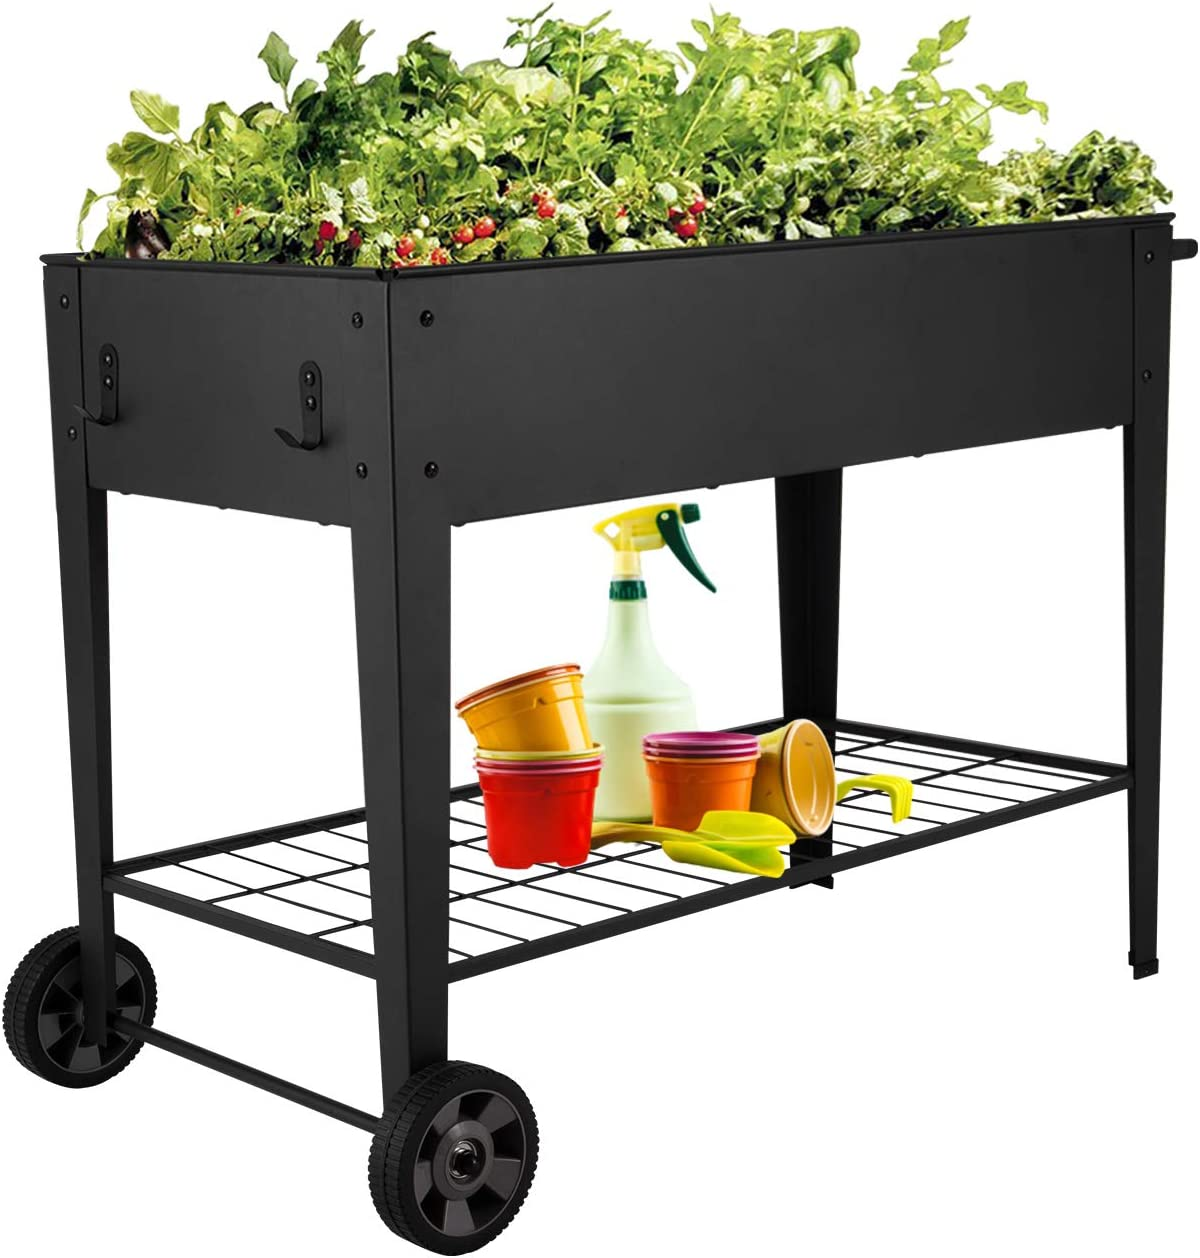 Kinsuite 12 Grids Pocket Herb Garden Bed Raised Planter Flower Box Elevated Metal with 2 Wheels&Storage Shelf for Vegetable Tomato Herbs Gardening, Removable Shelves